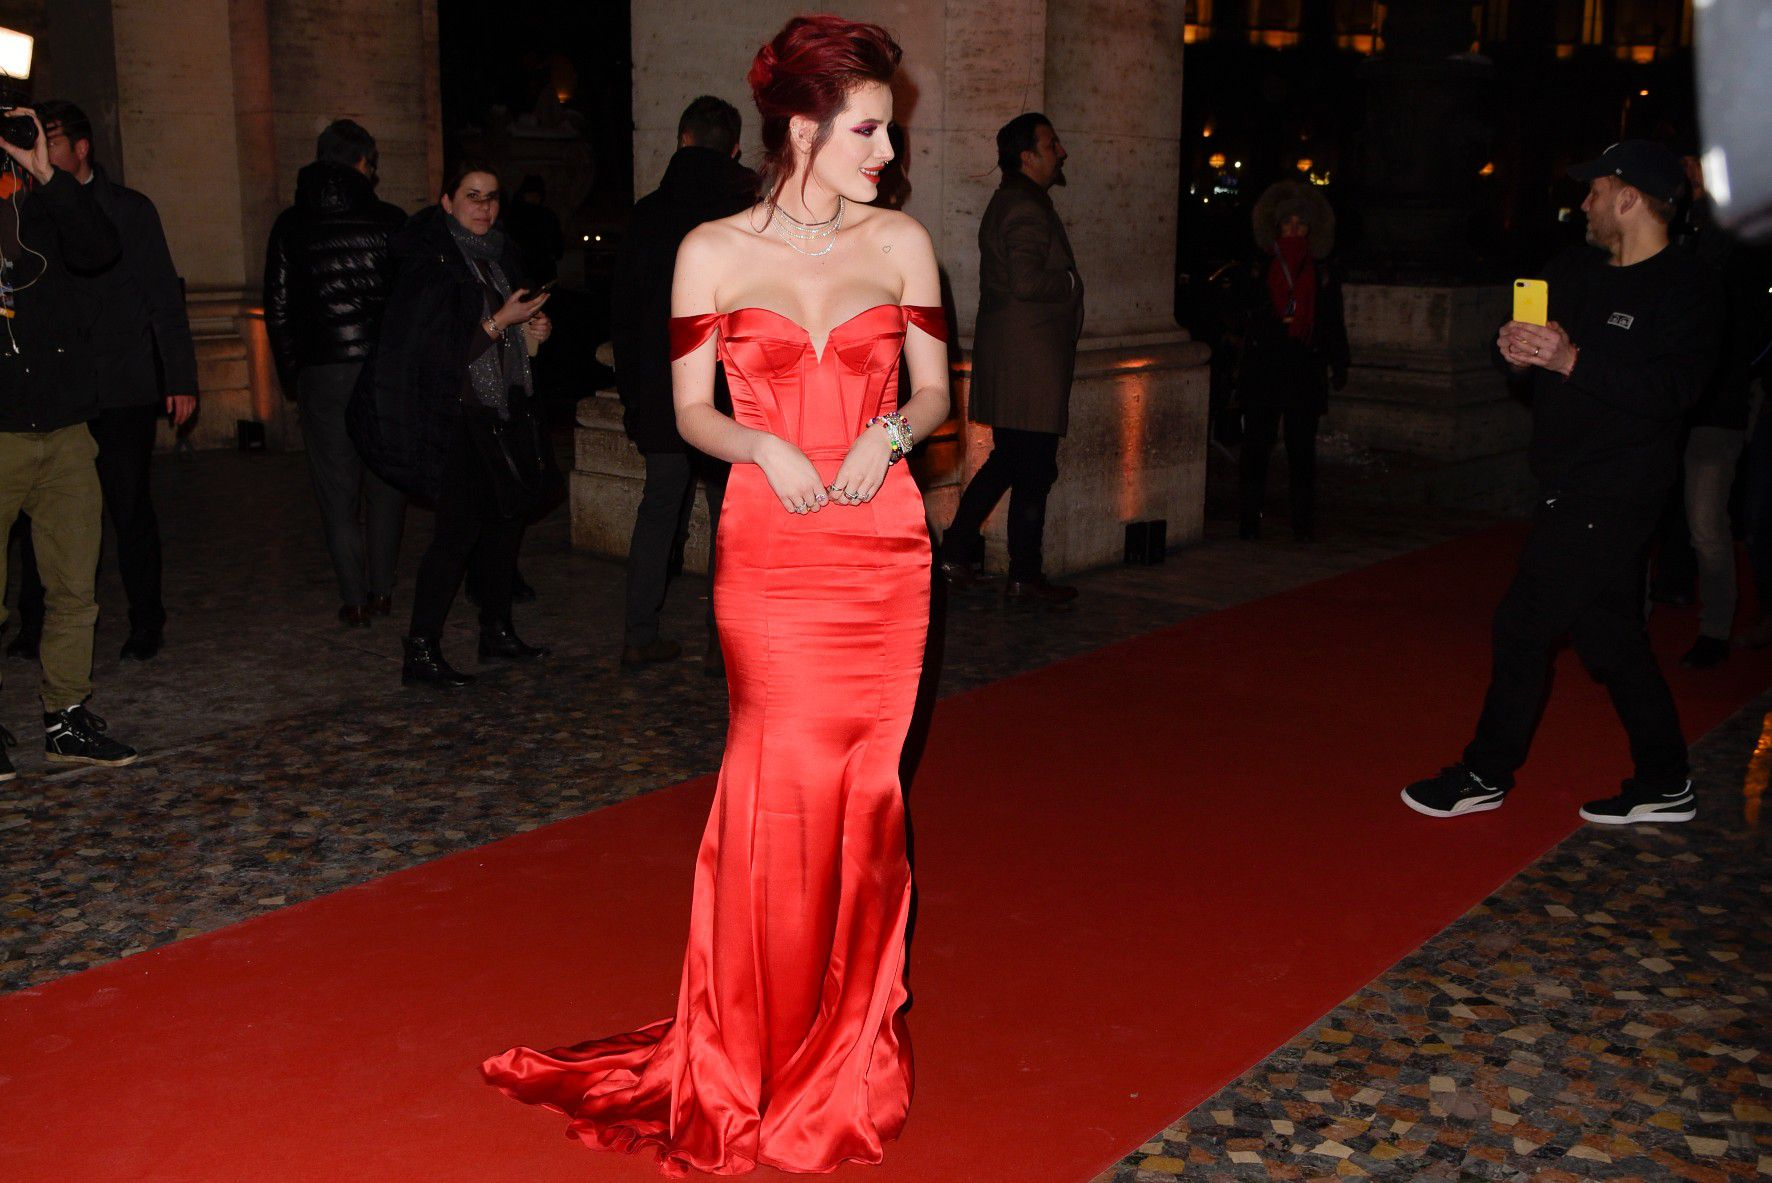 bella-thorne-deep-cleavage-at-midnight-run-premiere-in-rome-5164